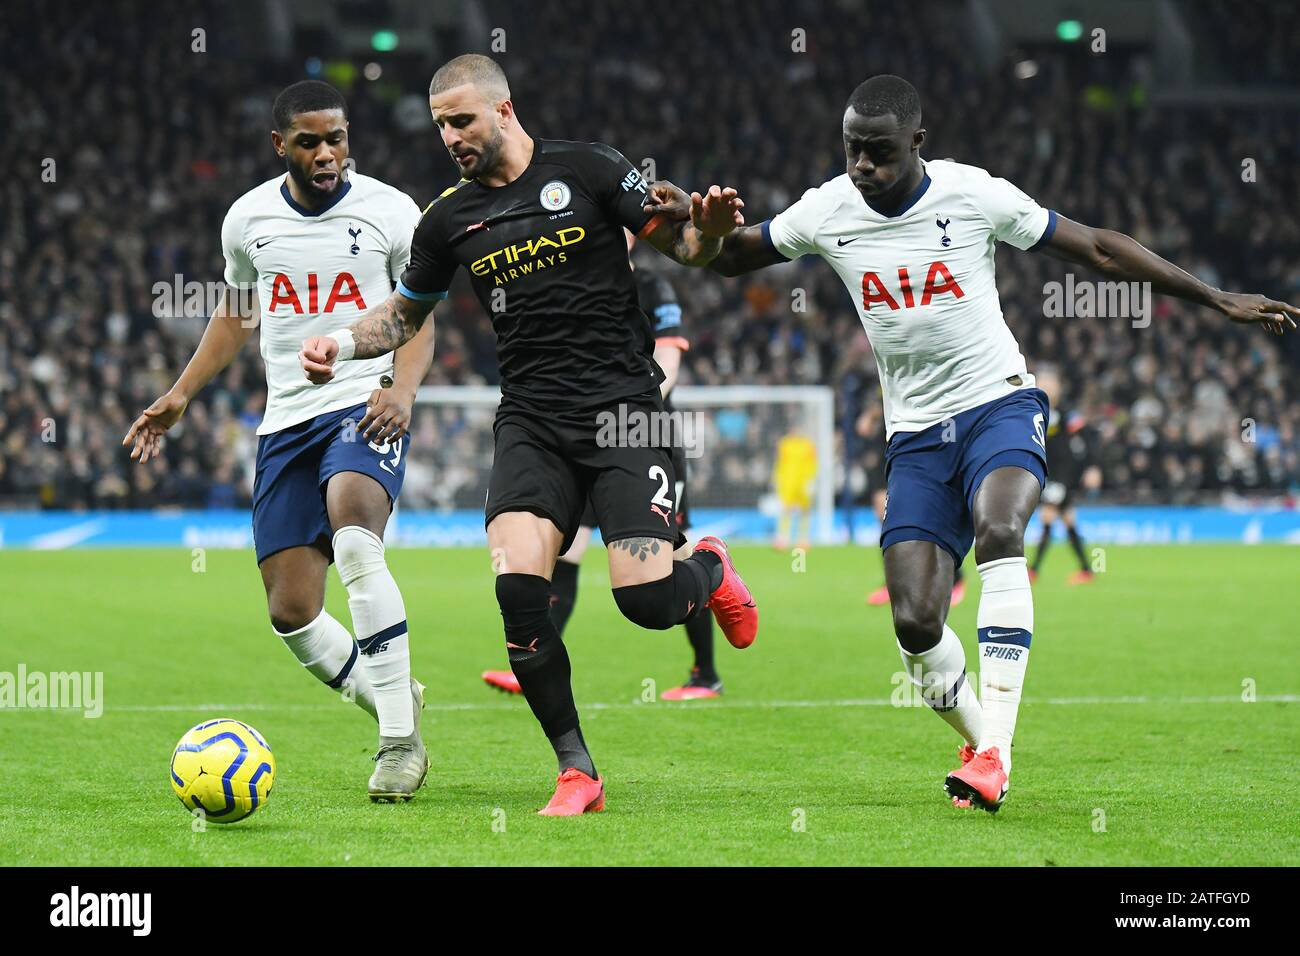 London England February 2 2020 Kyle Walker Of City And Davinson Sanchez Of Tottenham Pictured During